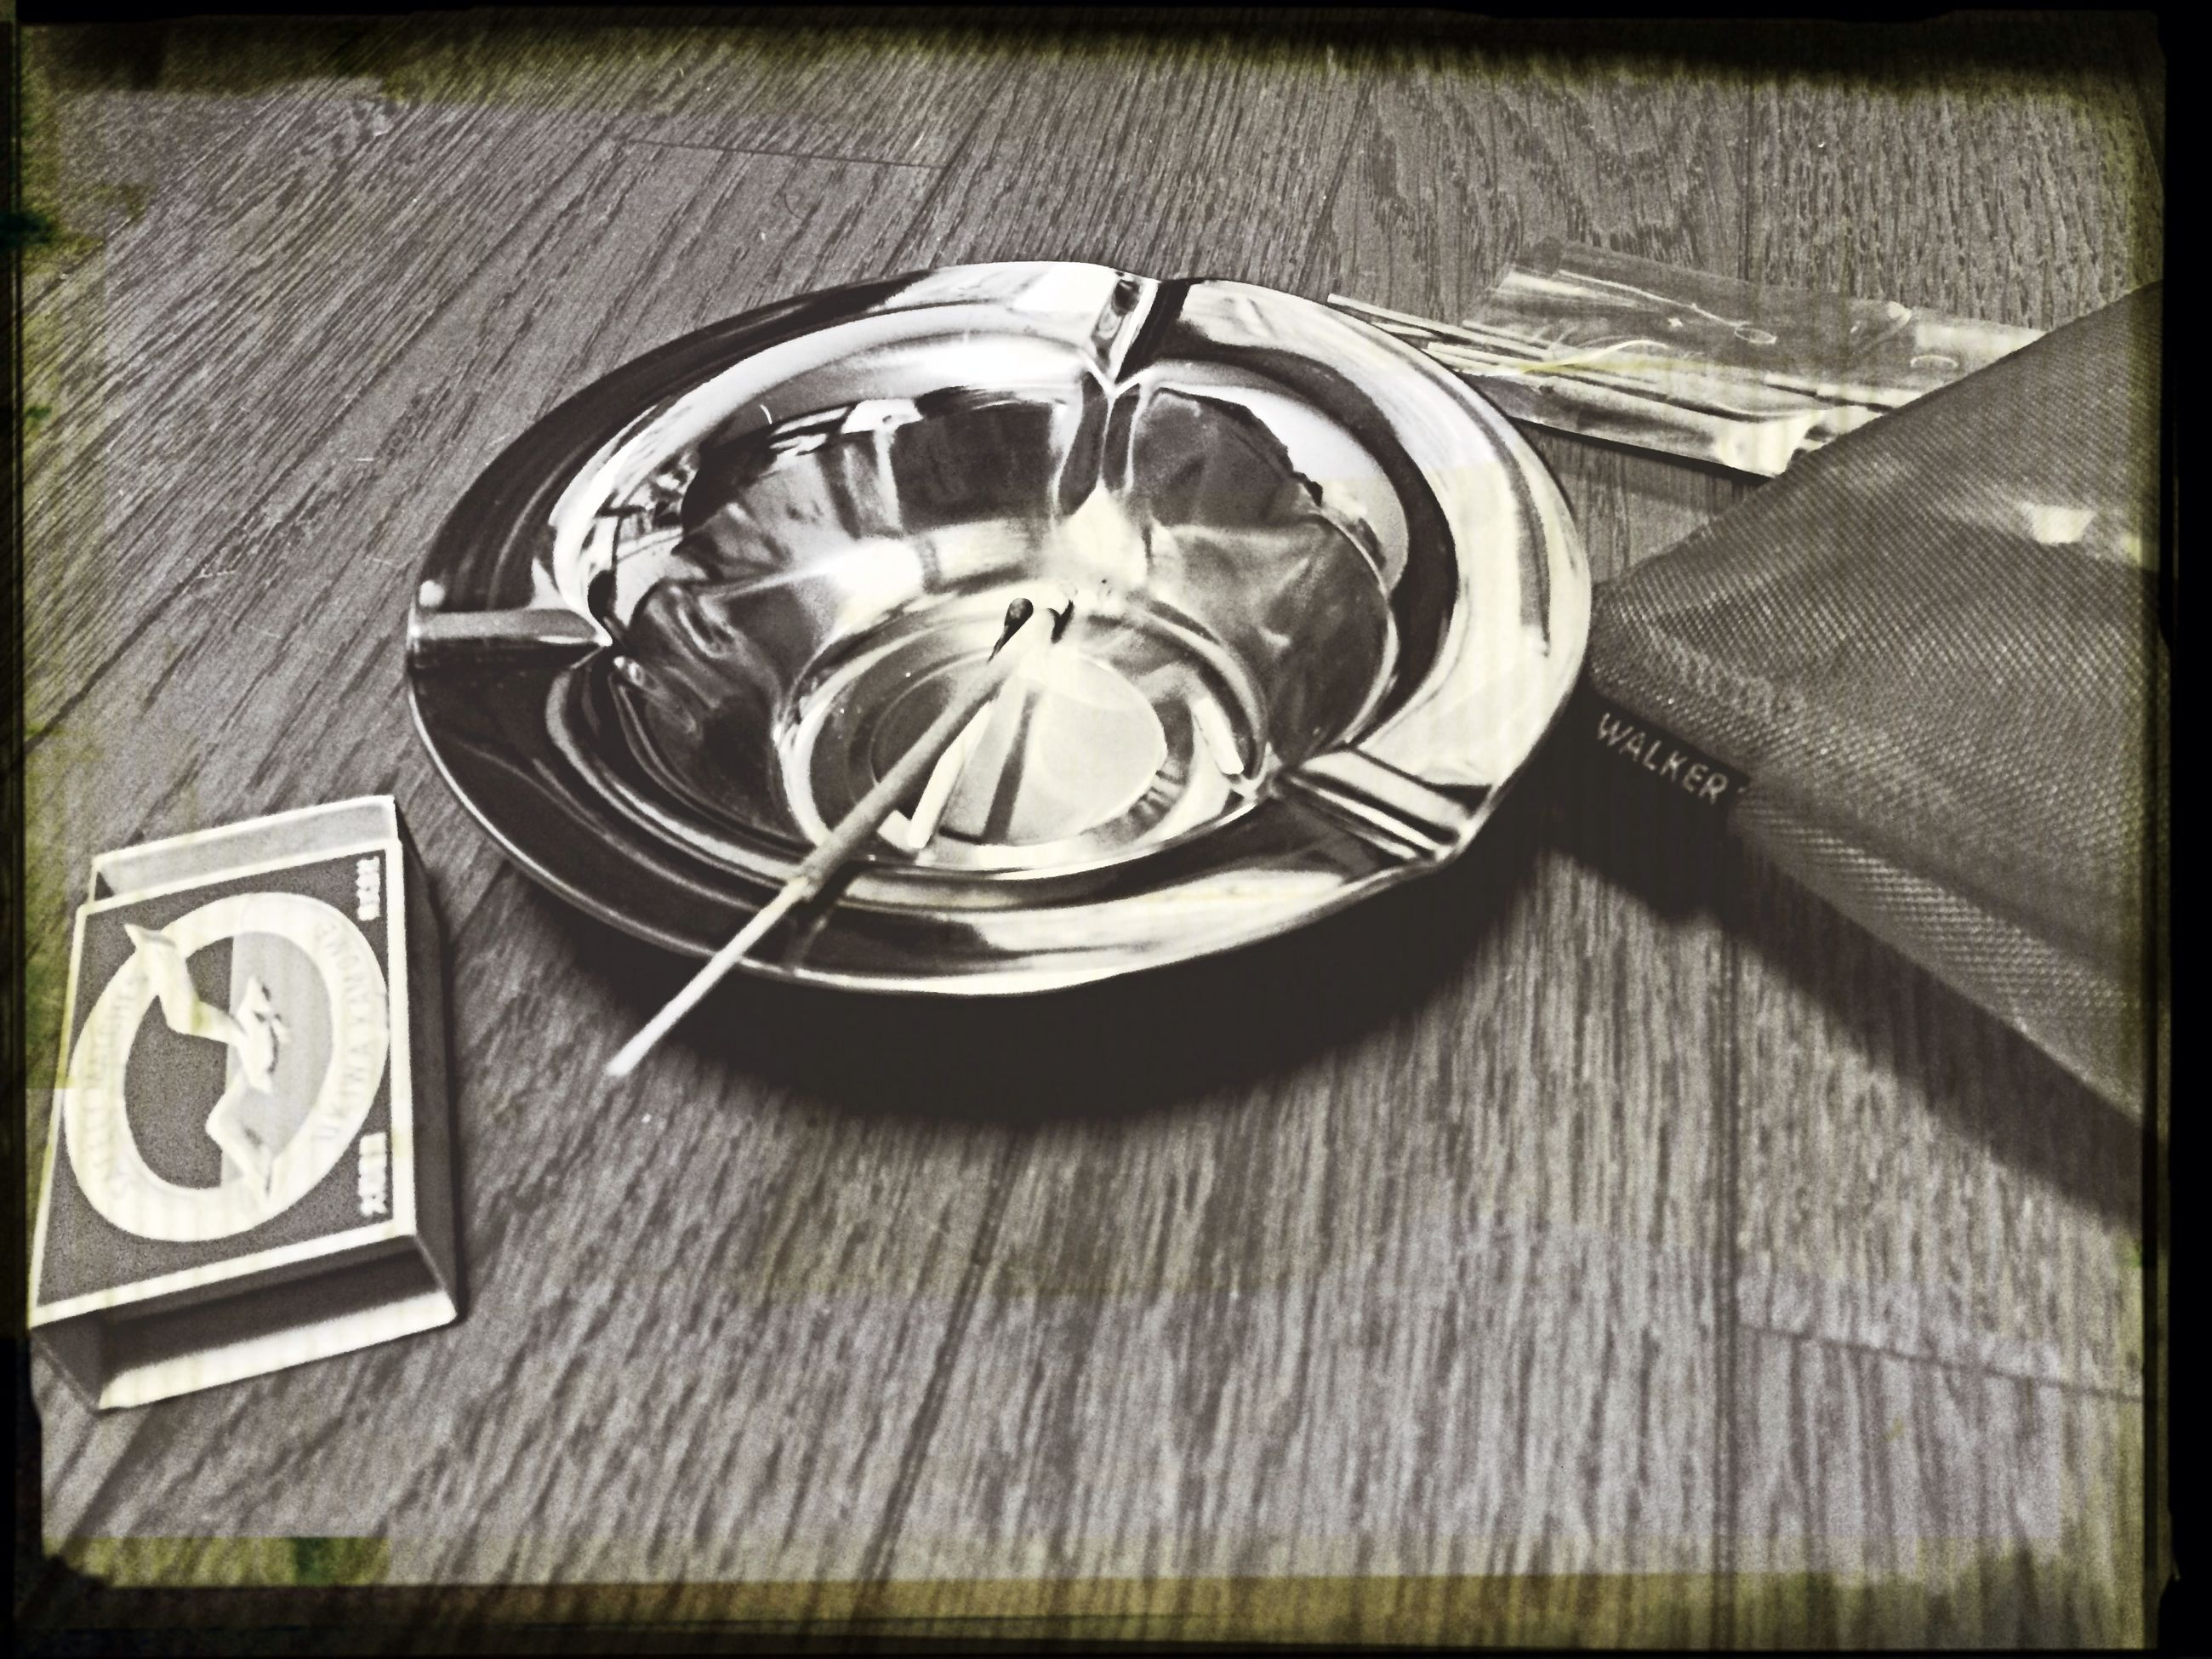 transfer print, auto post production filter, indoors, metal, circle, high angle view, close-up, still life, technology, no people, pattern, geometric shape, old-fashioned, table, directly above, retro styled, built structure, reflection, day, metallic